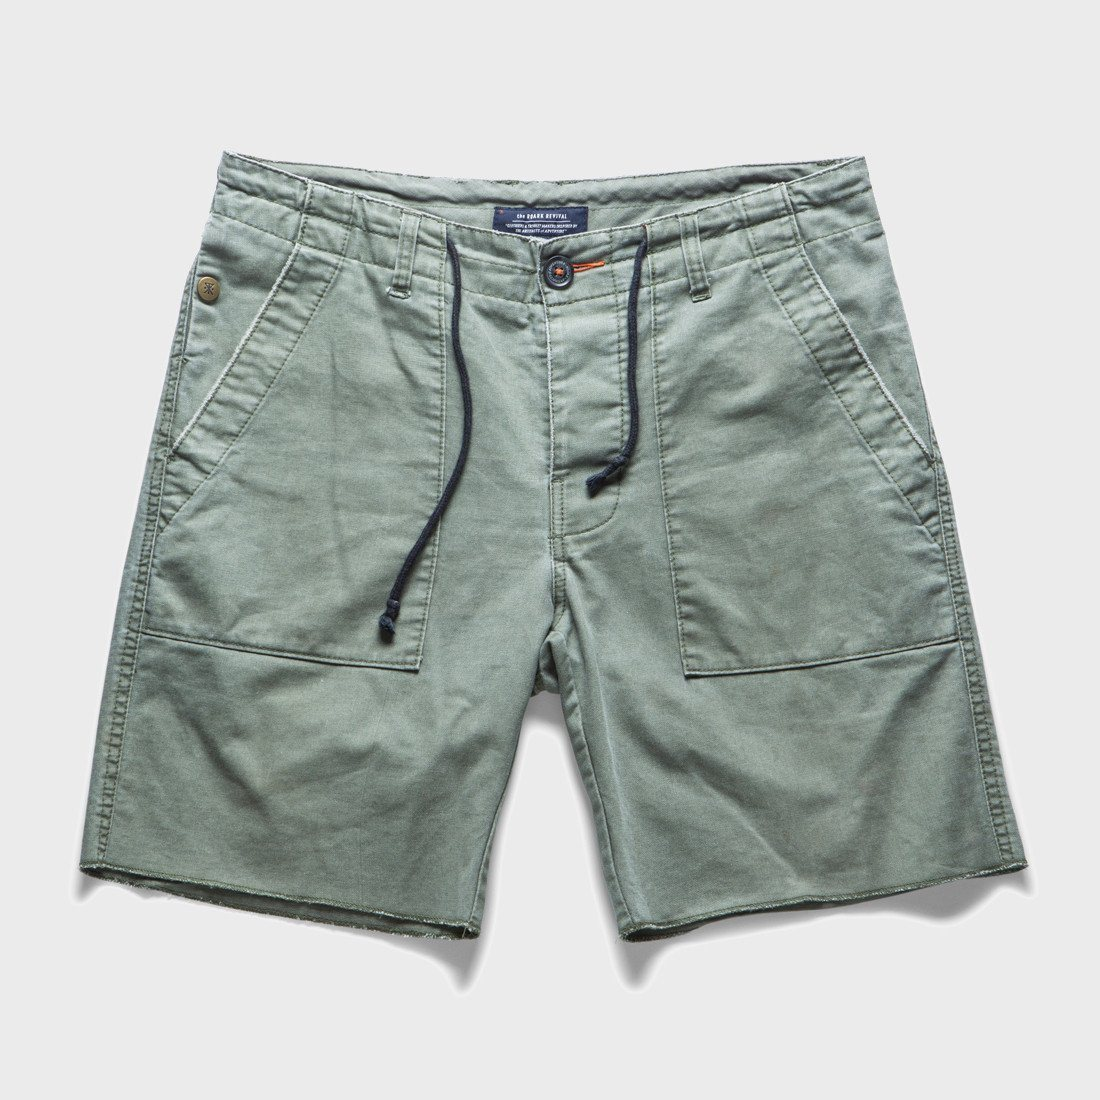 Roark Fort Kochi Short Army